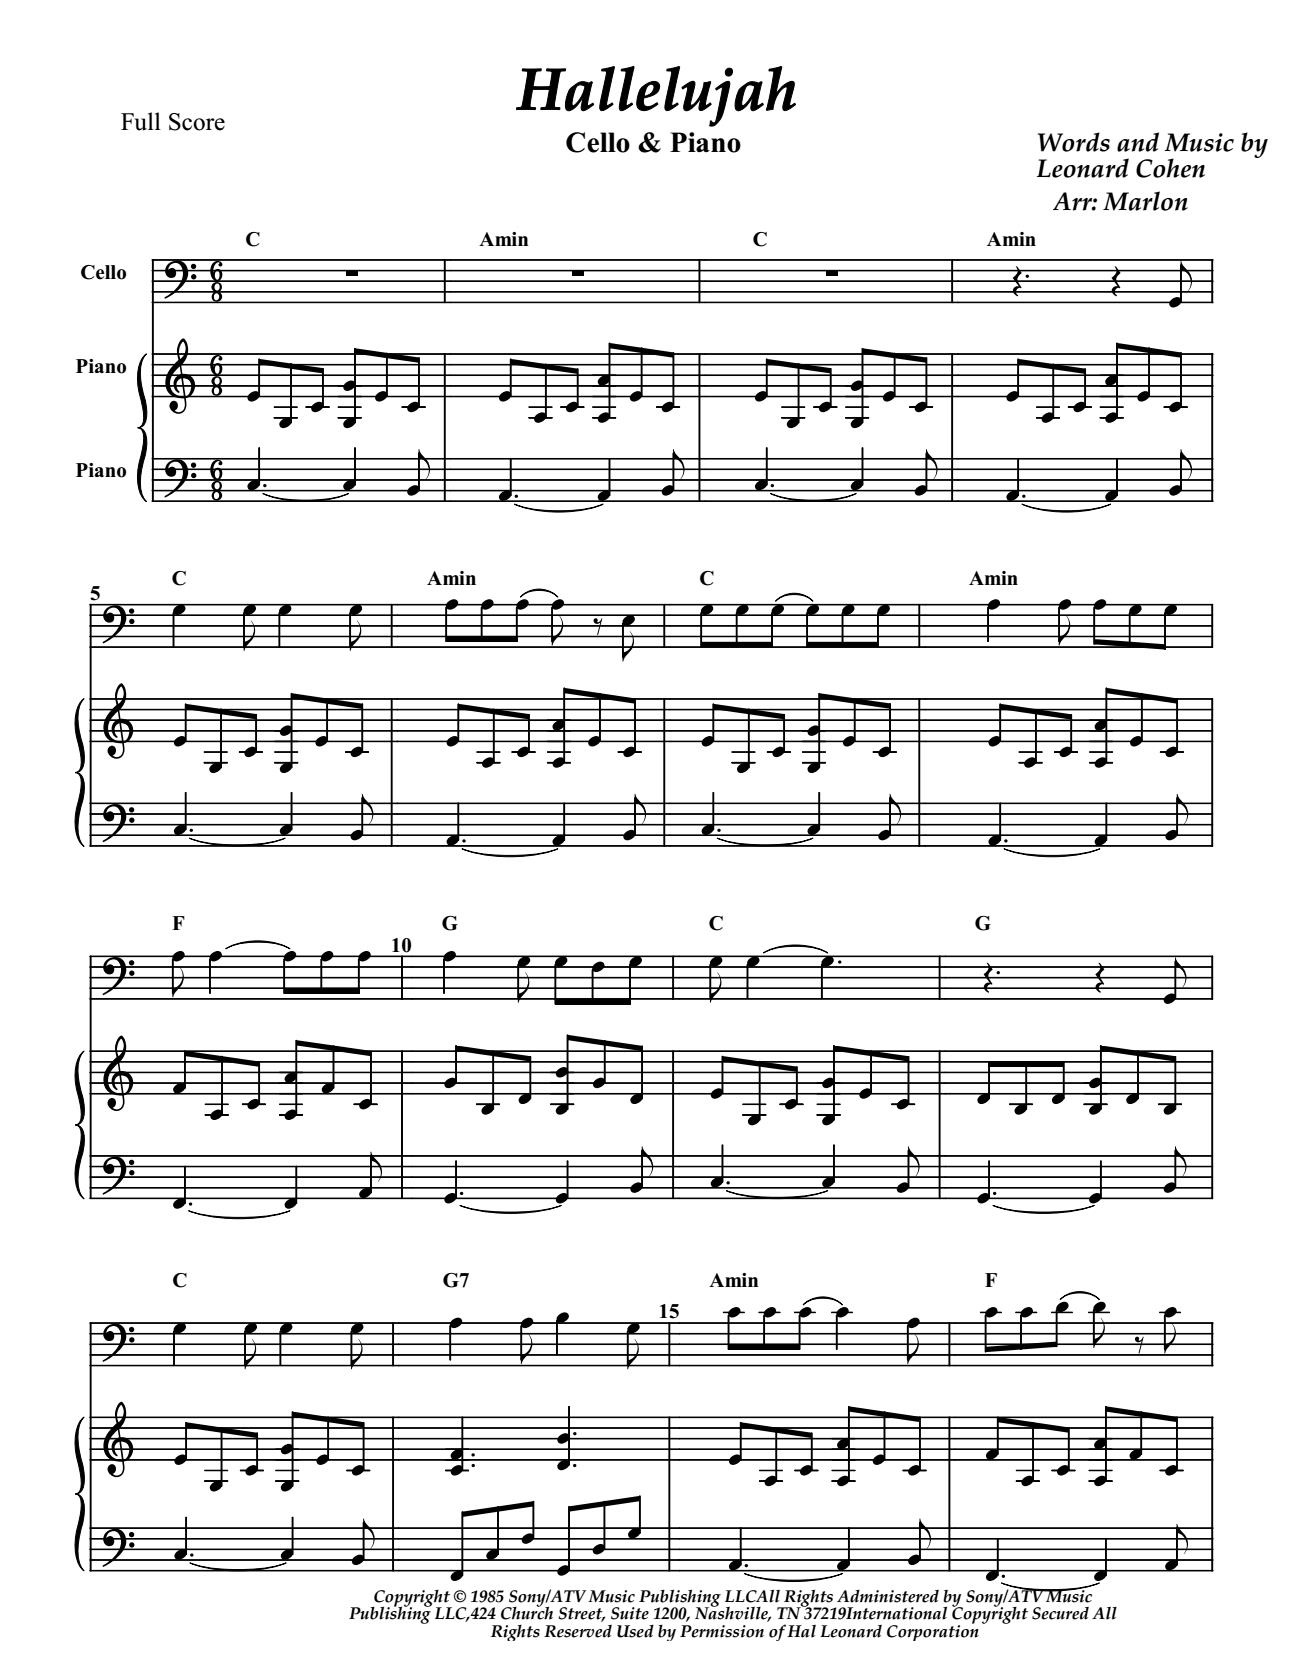 Hallelujah for Cello and piano